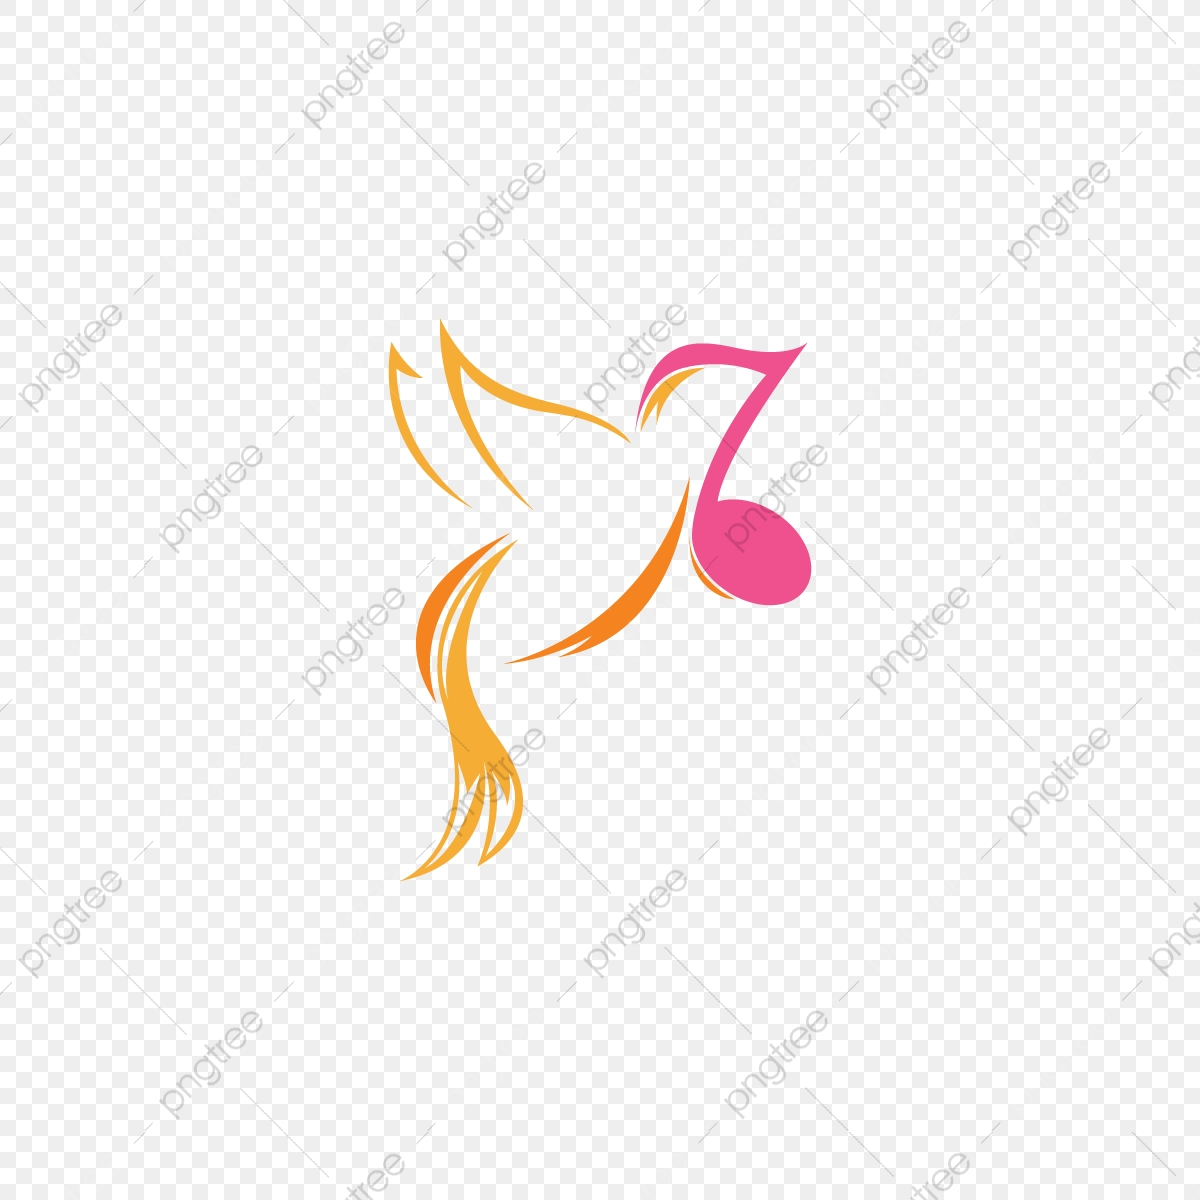 Bird Song Logo Design Png Bird Brand Branding Png And Vector With Transparent Background For Free Download